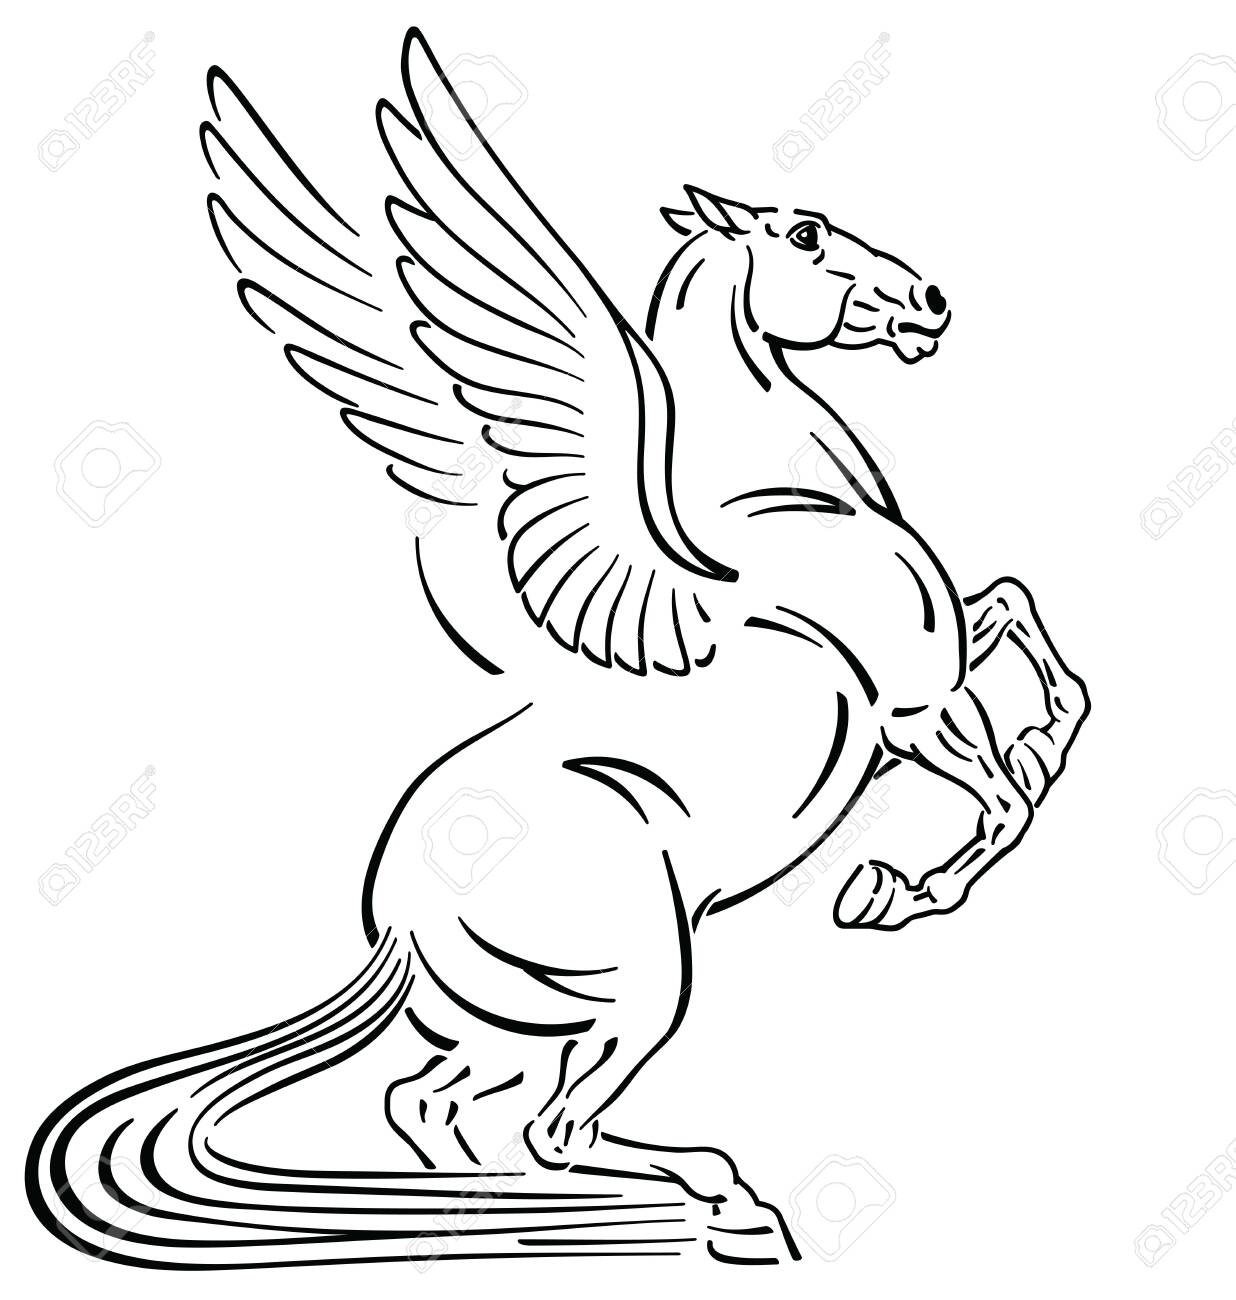 Pegasus Mythological Winged Horse Outline Tattoo Style Vector Royalty Free Cliparts Vectors And Stock Illustration Image 120846796